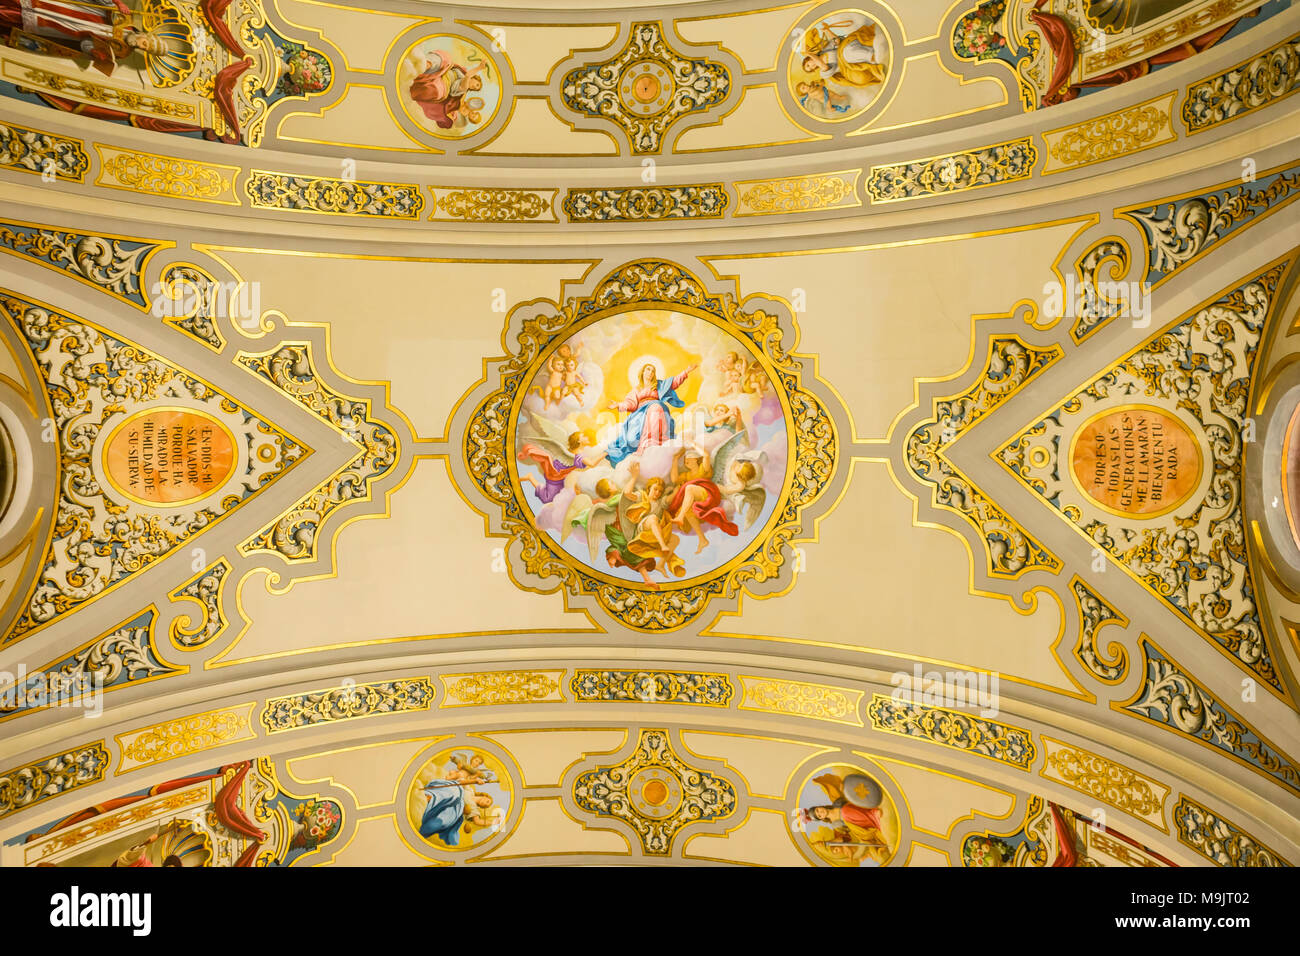 The colourful painted ceiling in neobaroque style in the Basilica de la Macarena (Macarena church) in the Spanish city of Seville, Andalusia, Spain - Stock Image